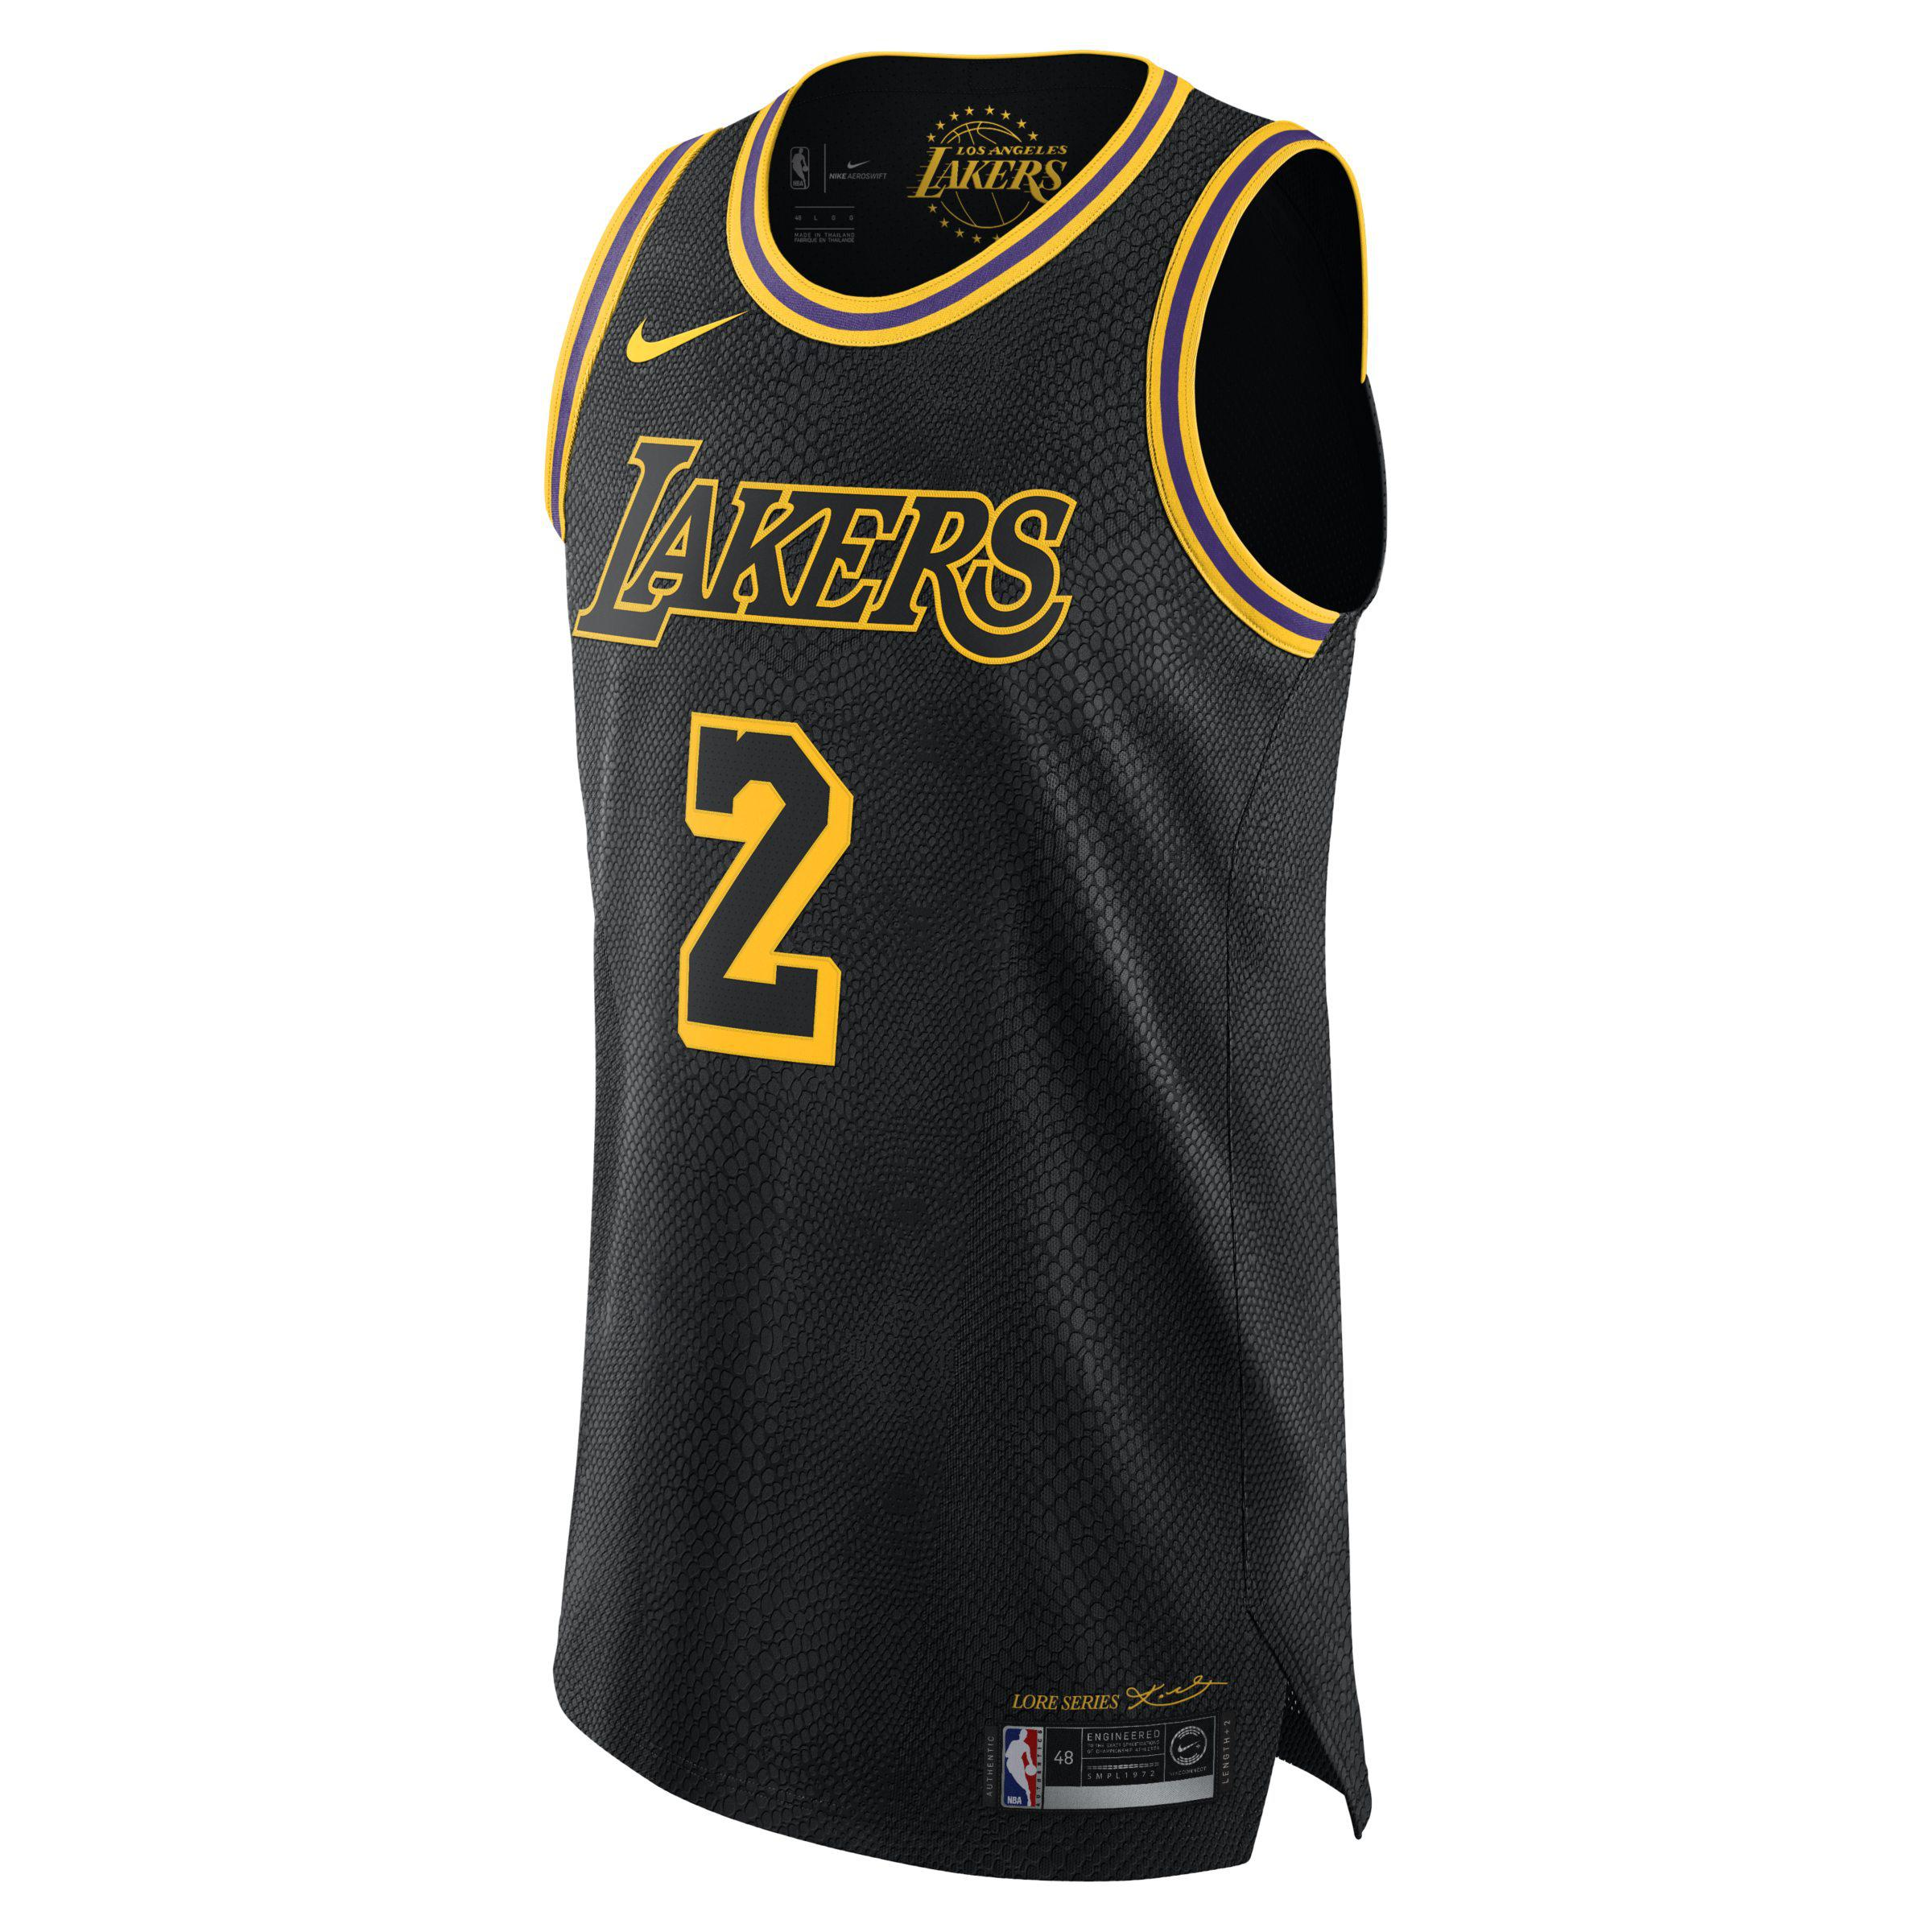 e8d59a194 Nike. Men s Black Lonzo Ball City Edition Authentic Jersey (los Angeles  Lakers) Nba Connected Jersey